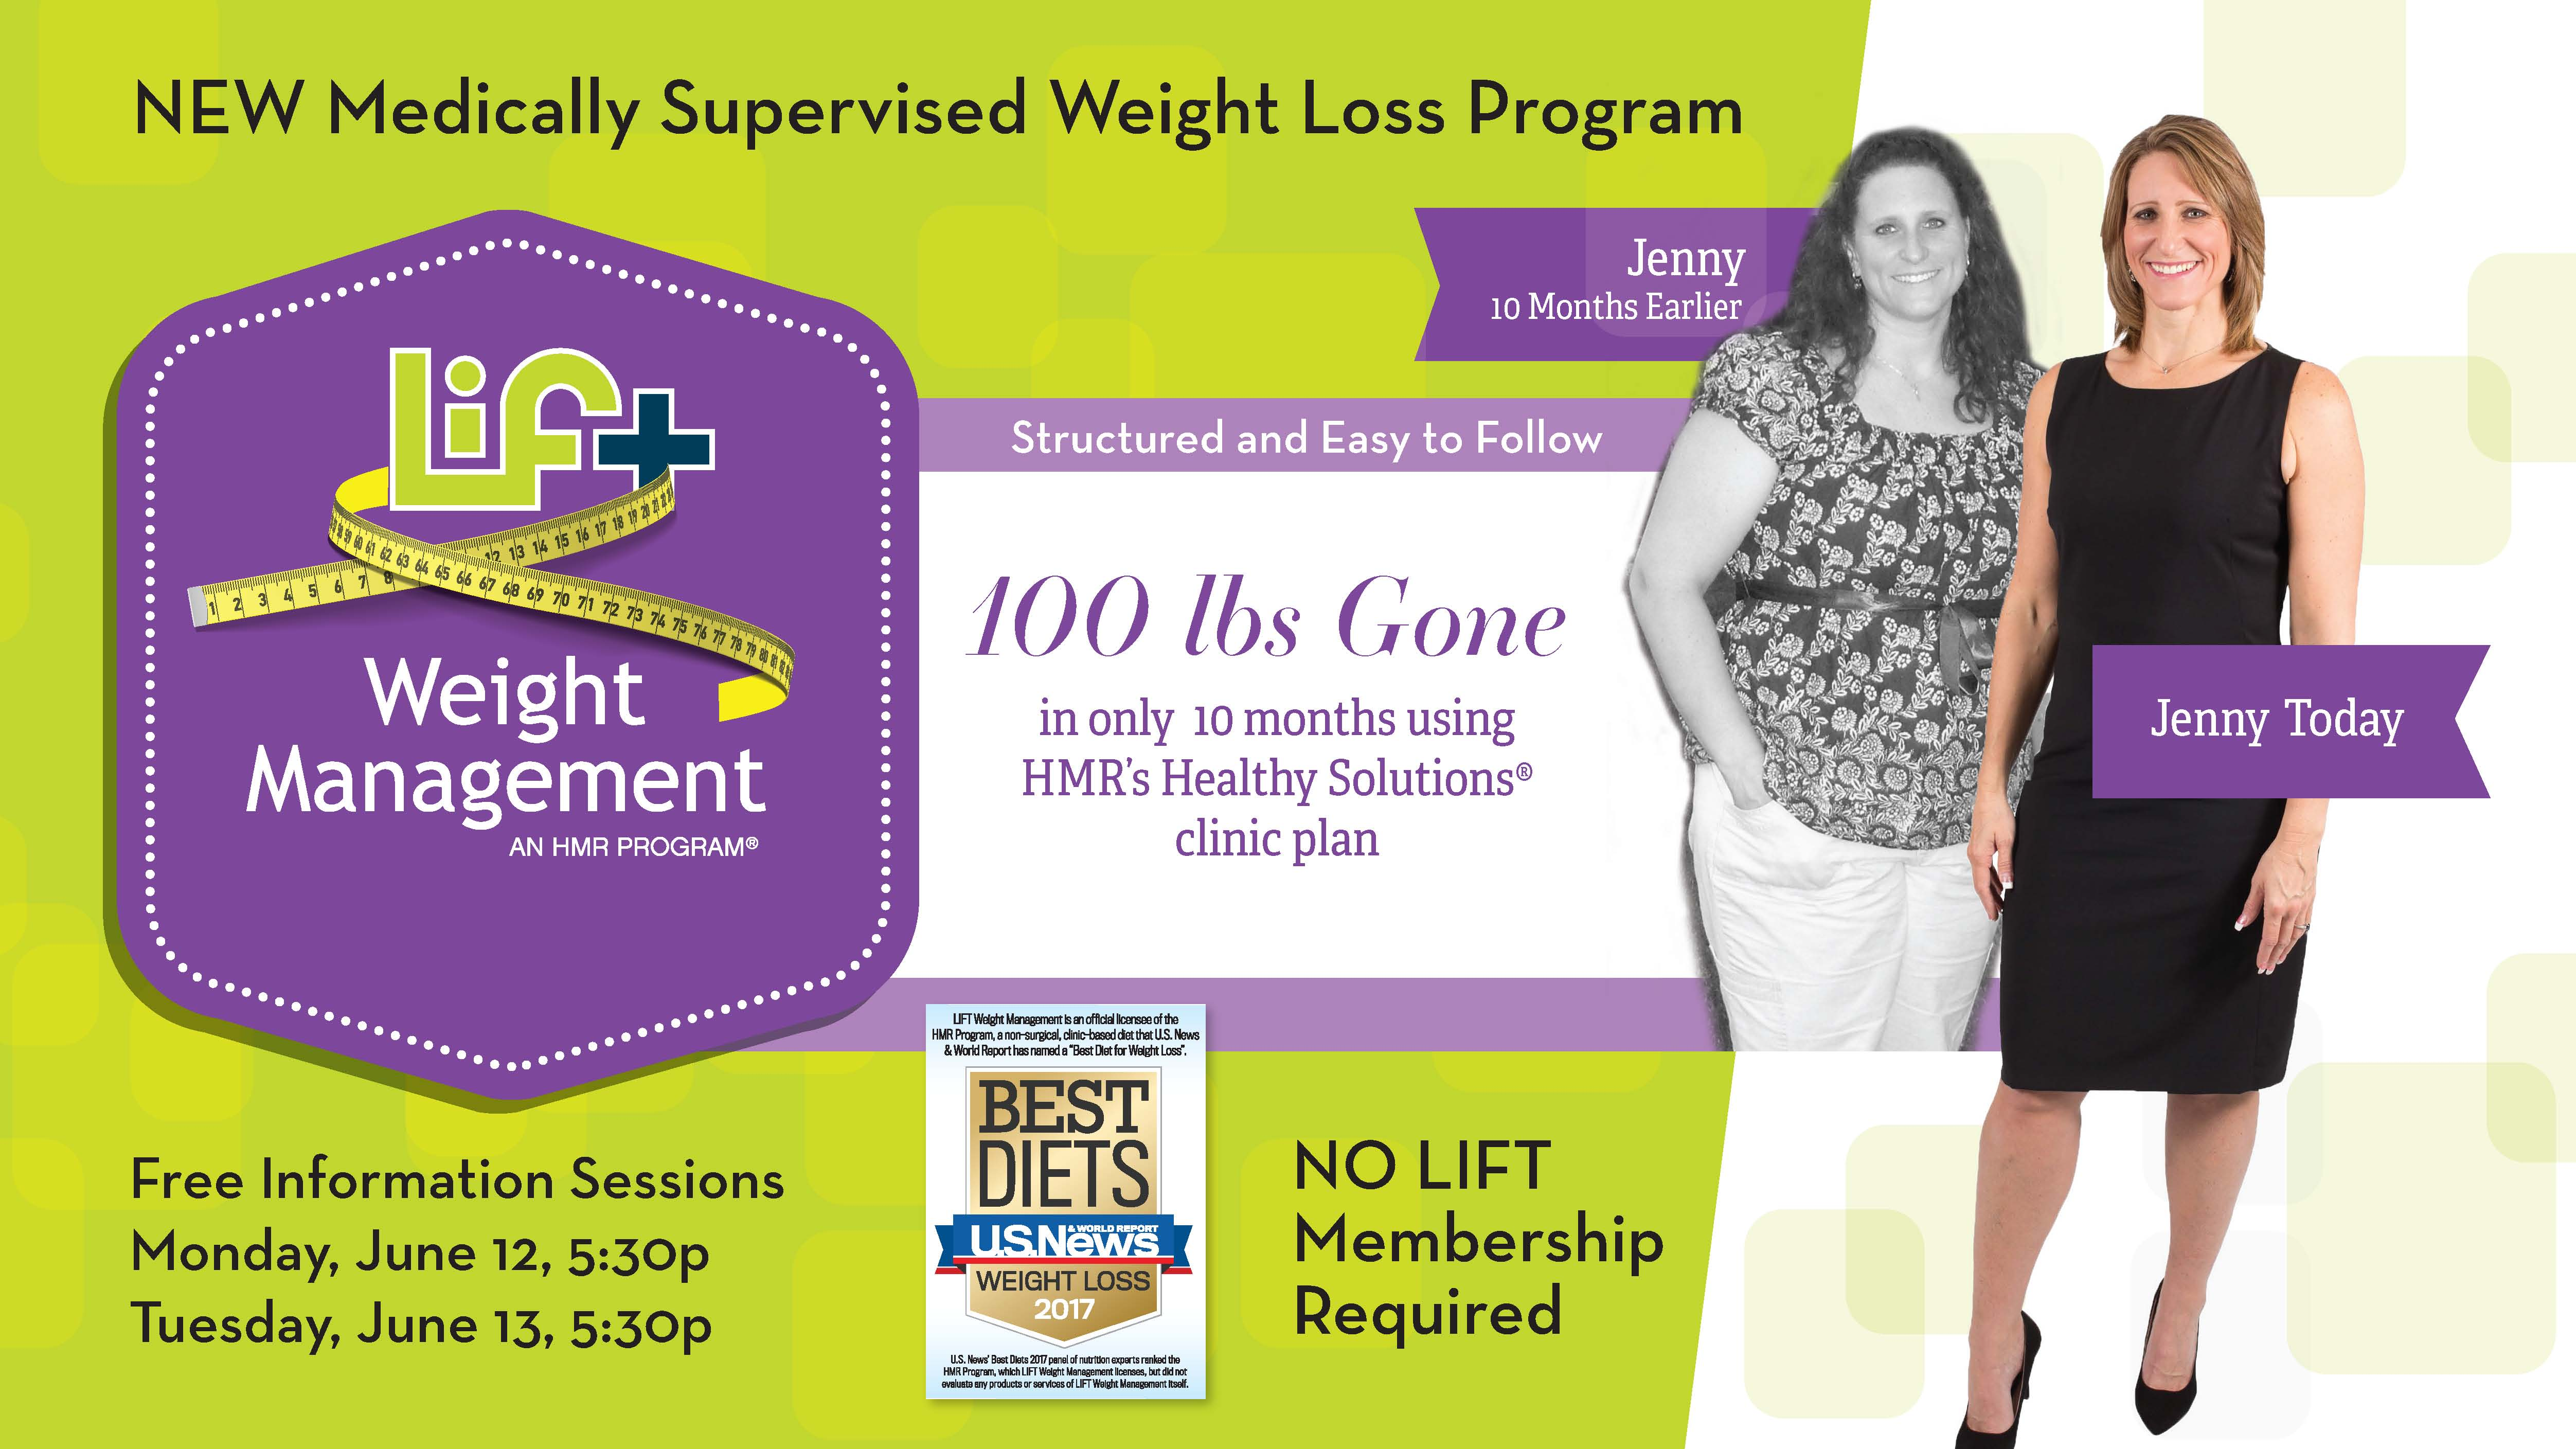 LIFT Weight Management Information Session